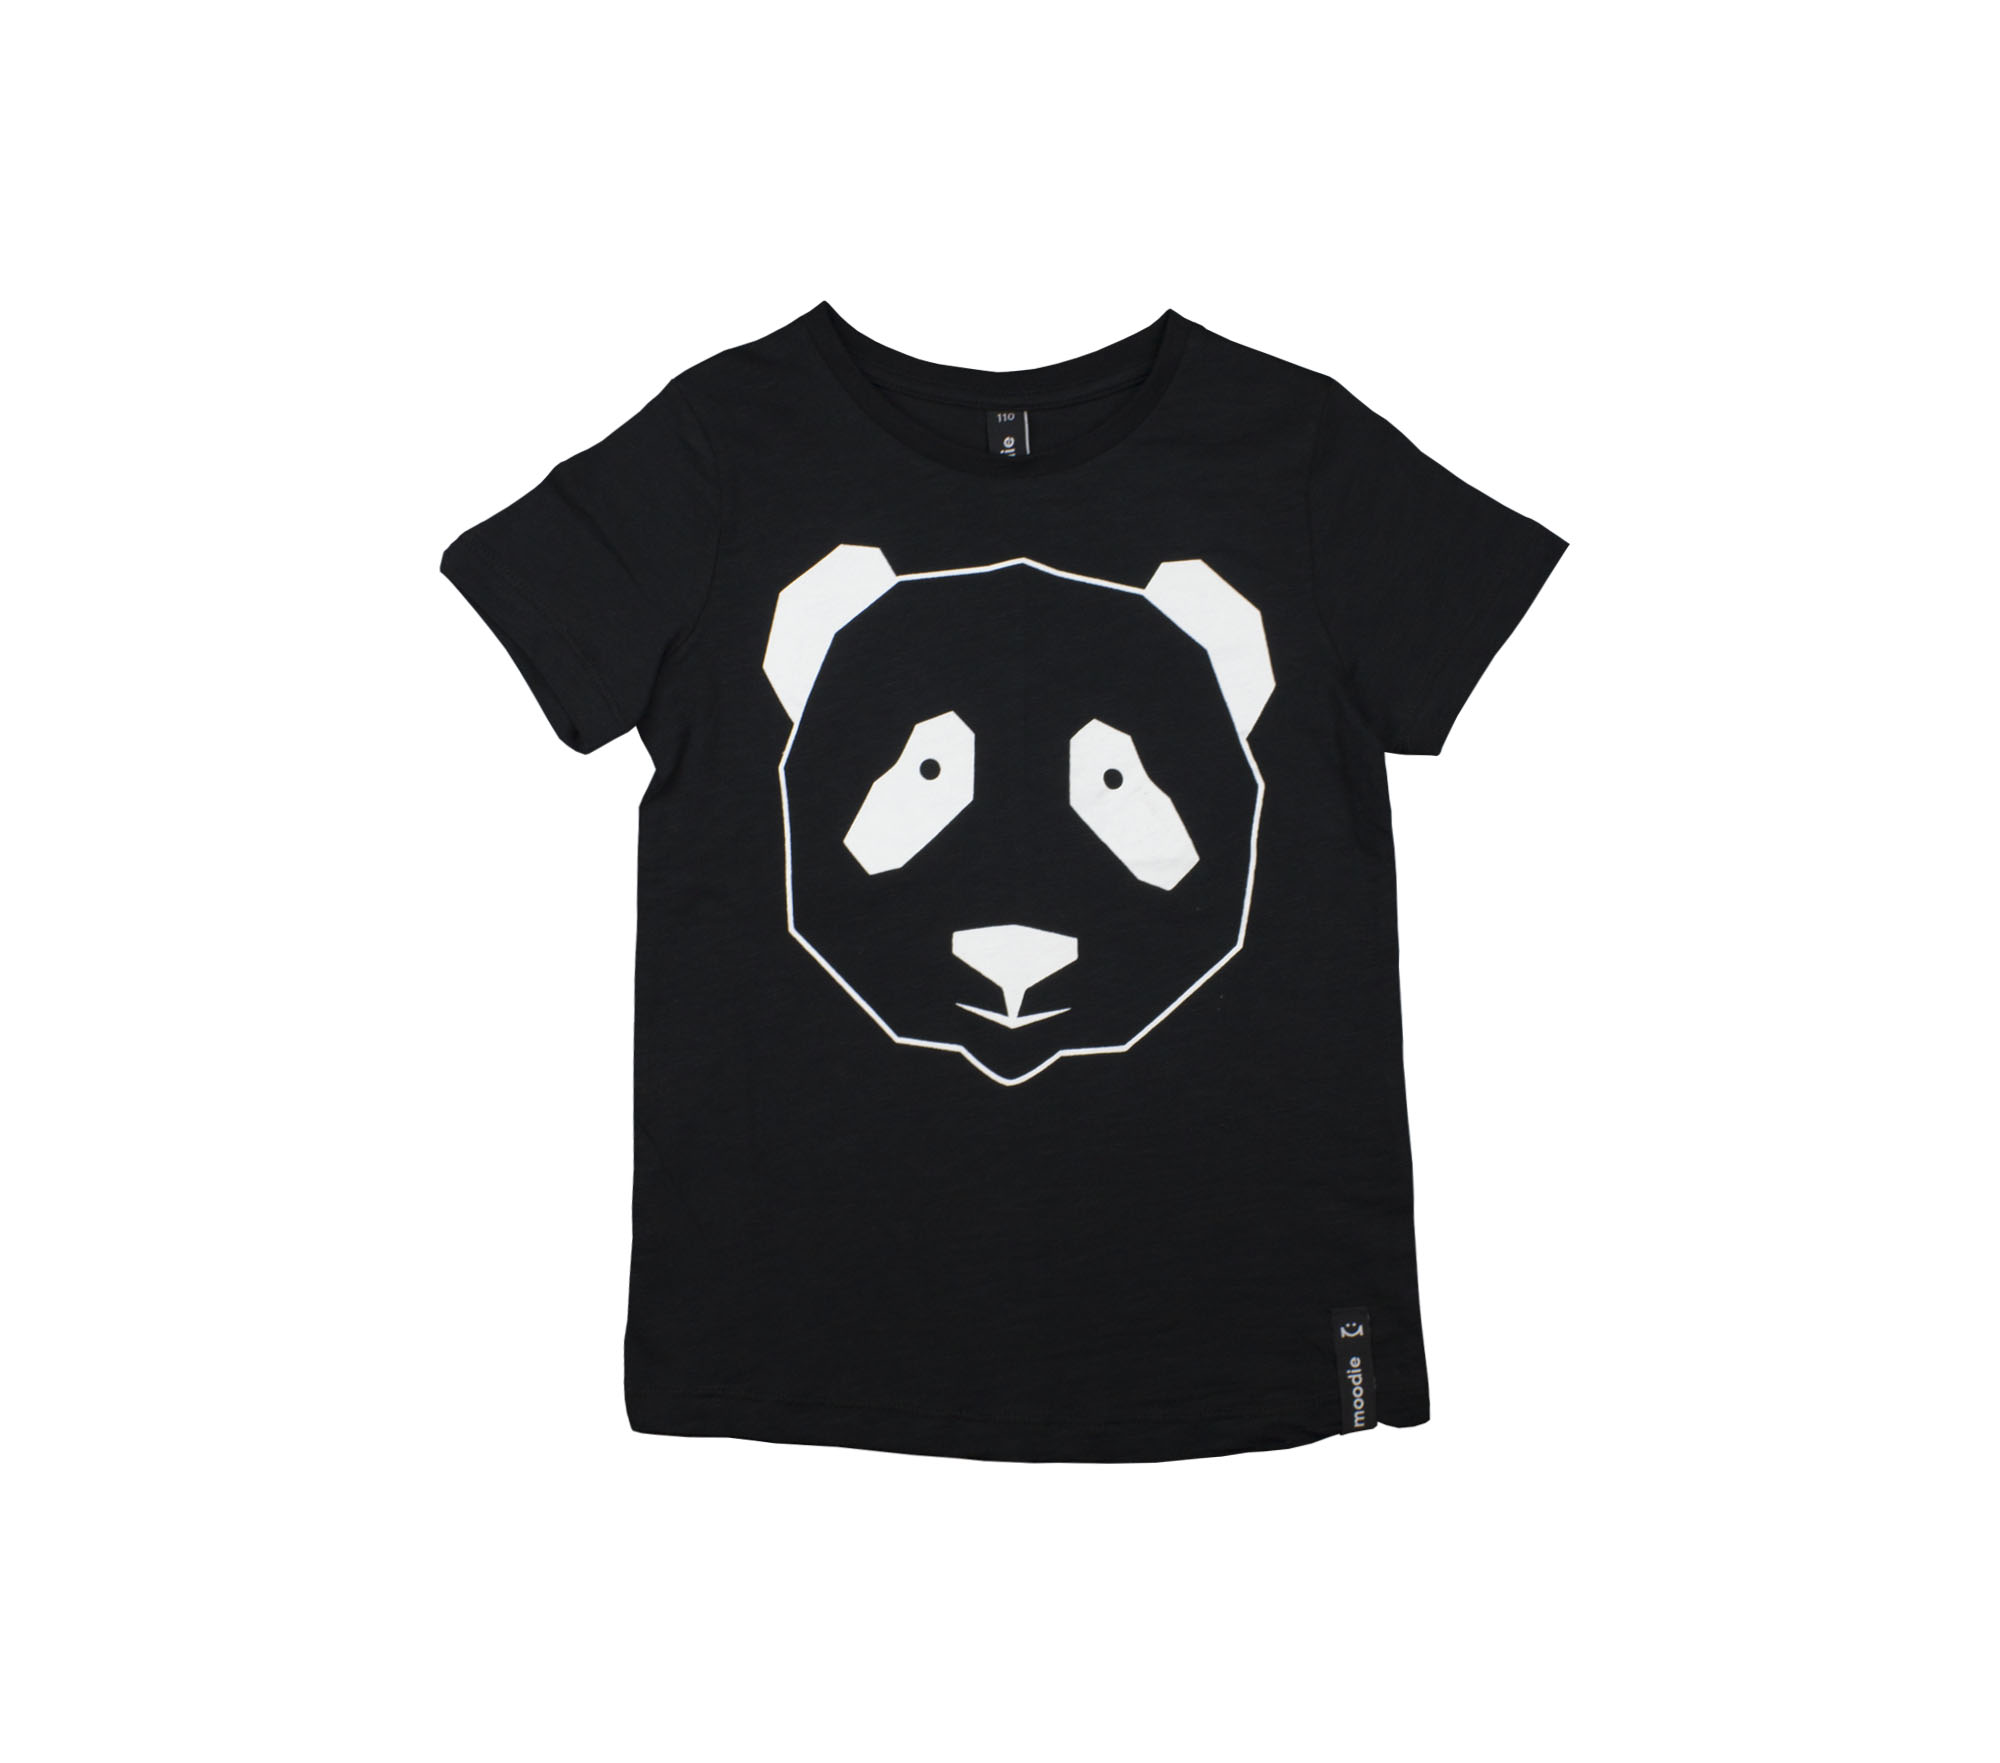 T-shirt barn svart panda- Monky